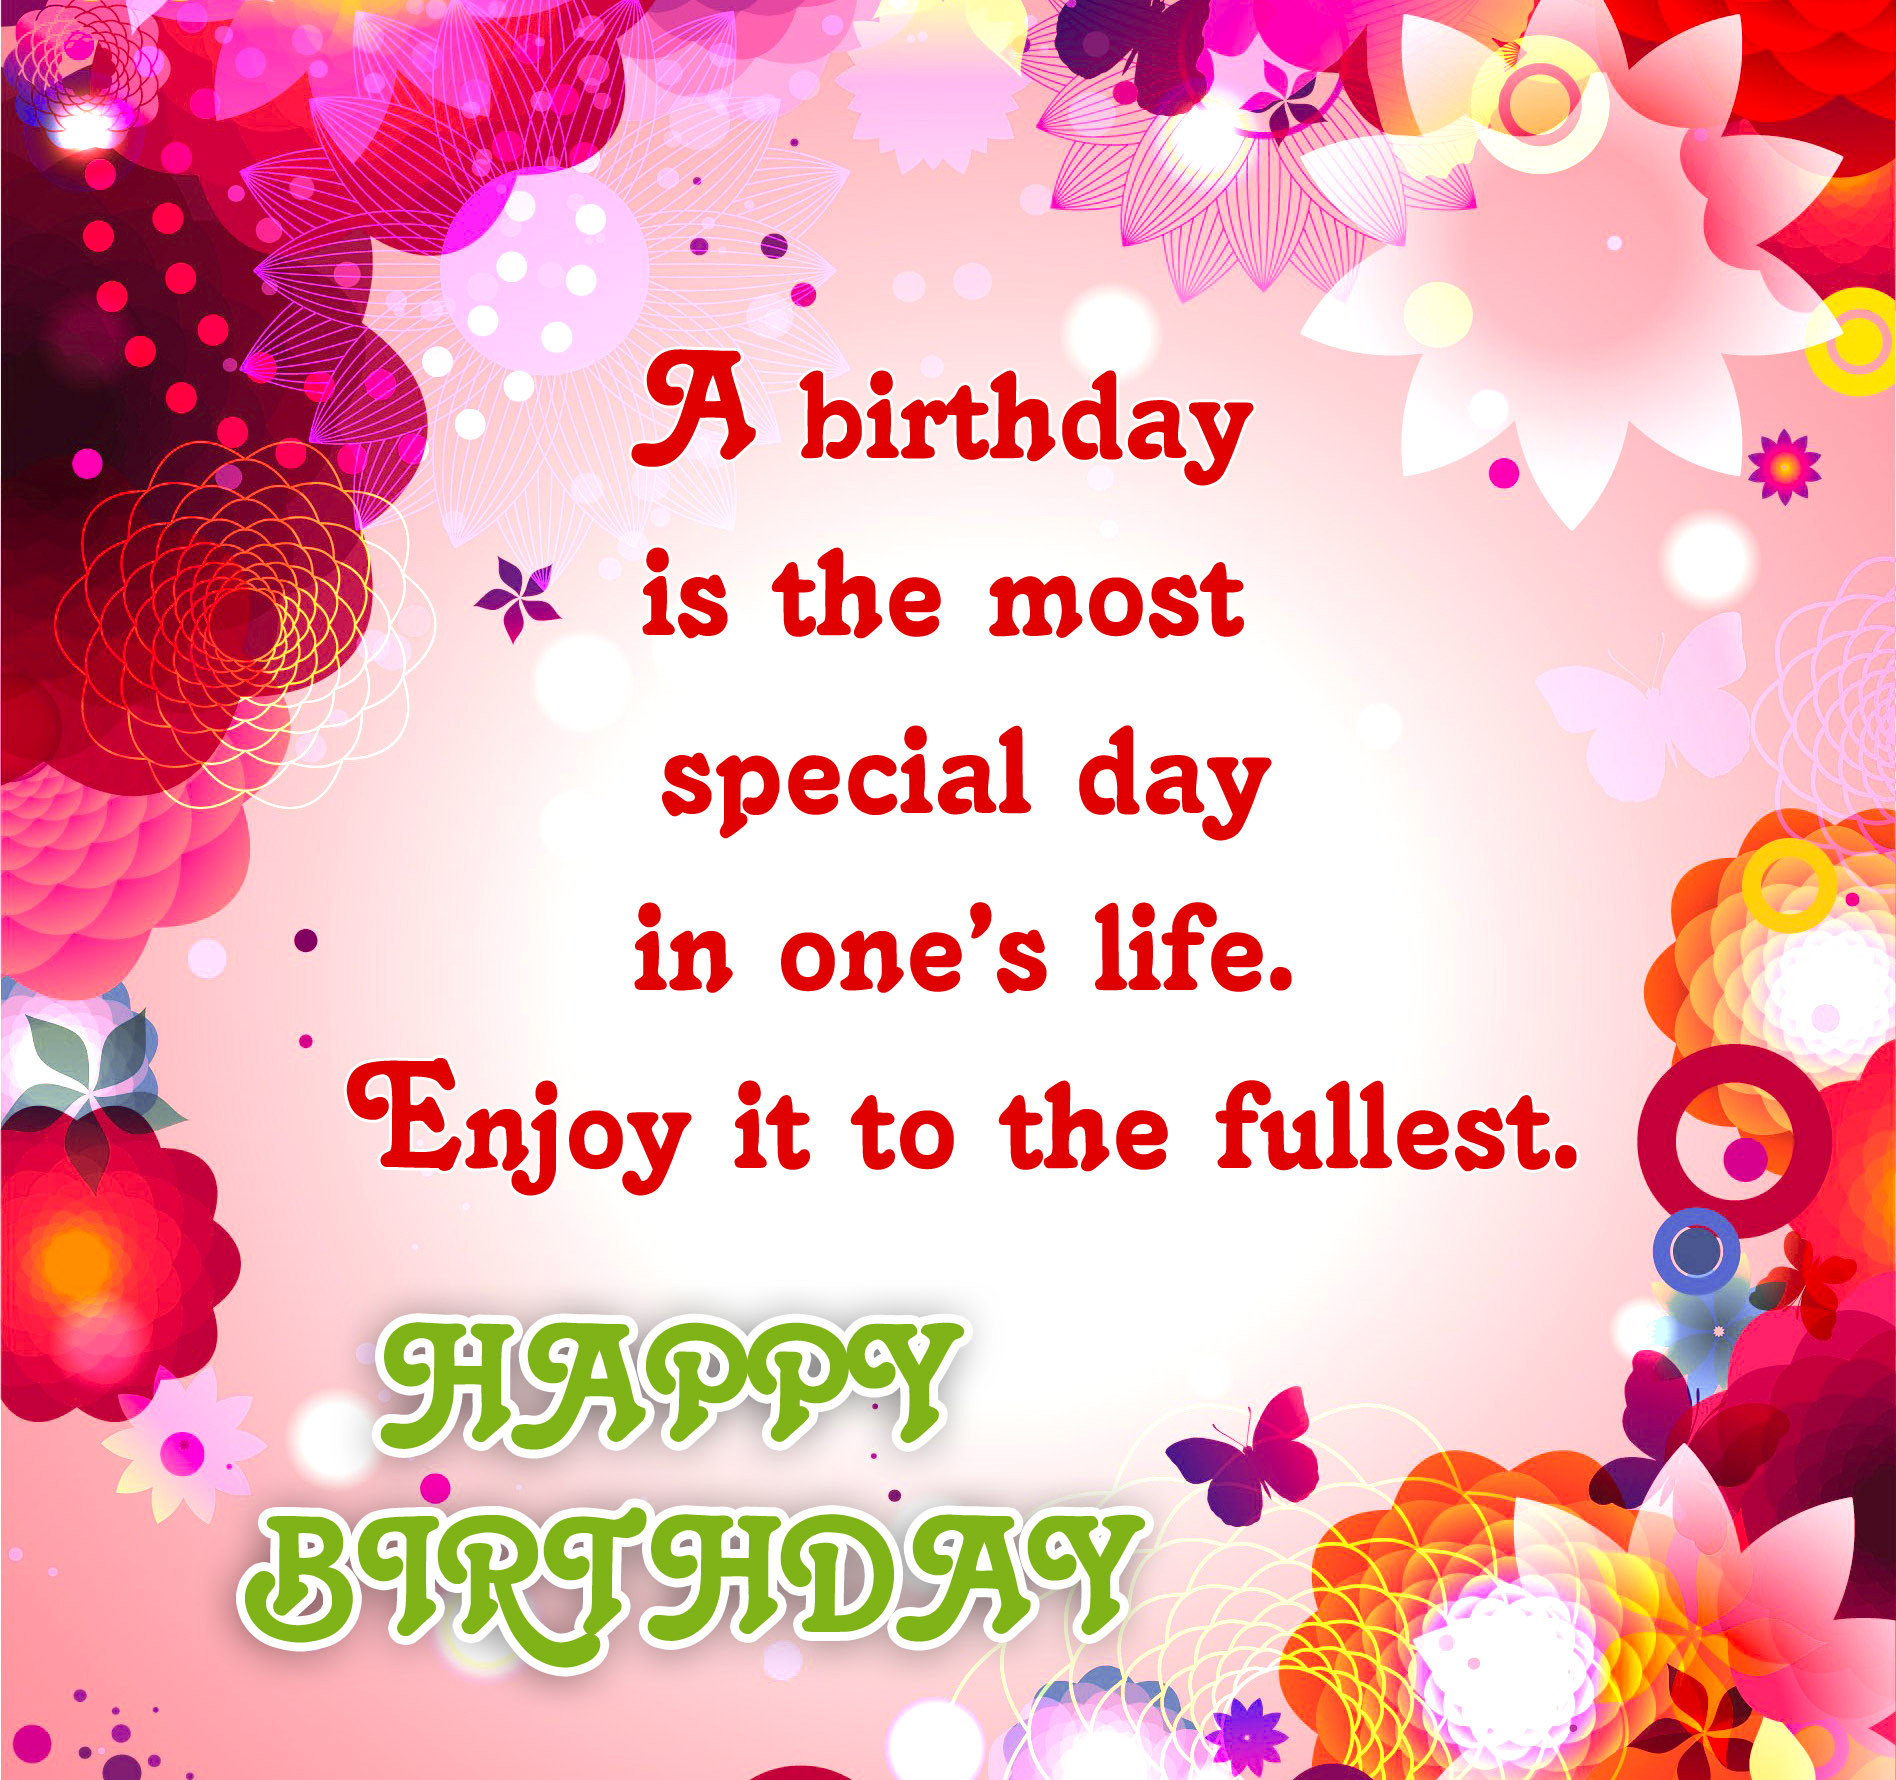 Best ideas about Free Happy Birthday Wishes . Save or Pin 250 Happy Birthday Wishes for Friends [MUST READ] Now.